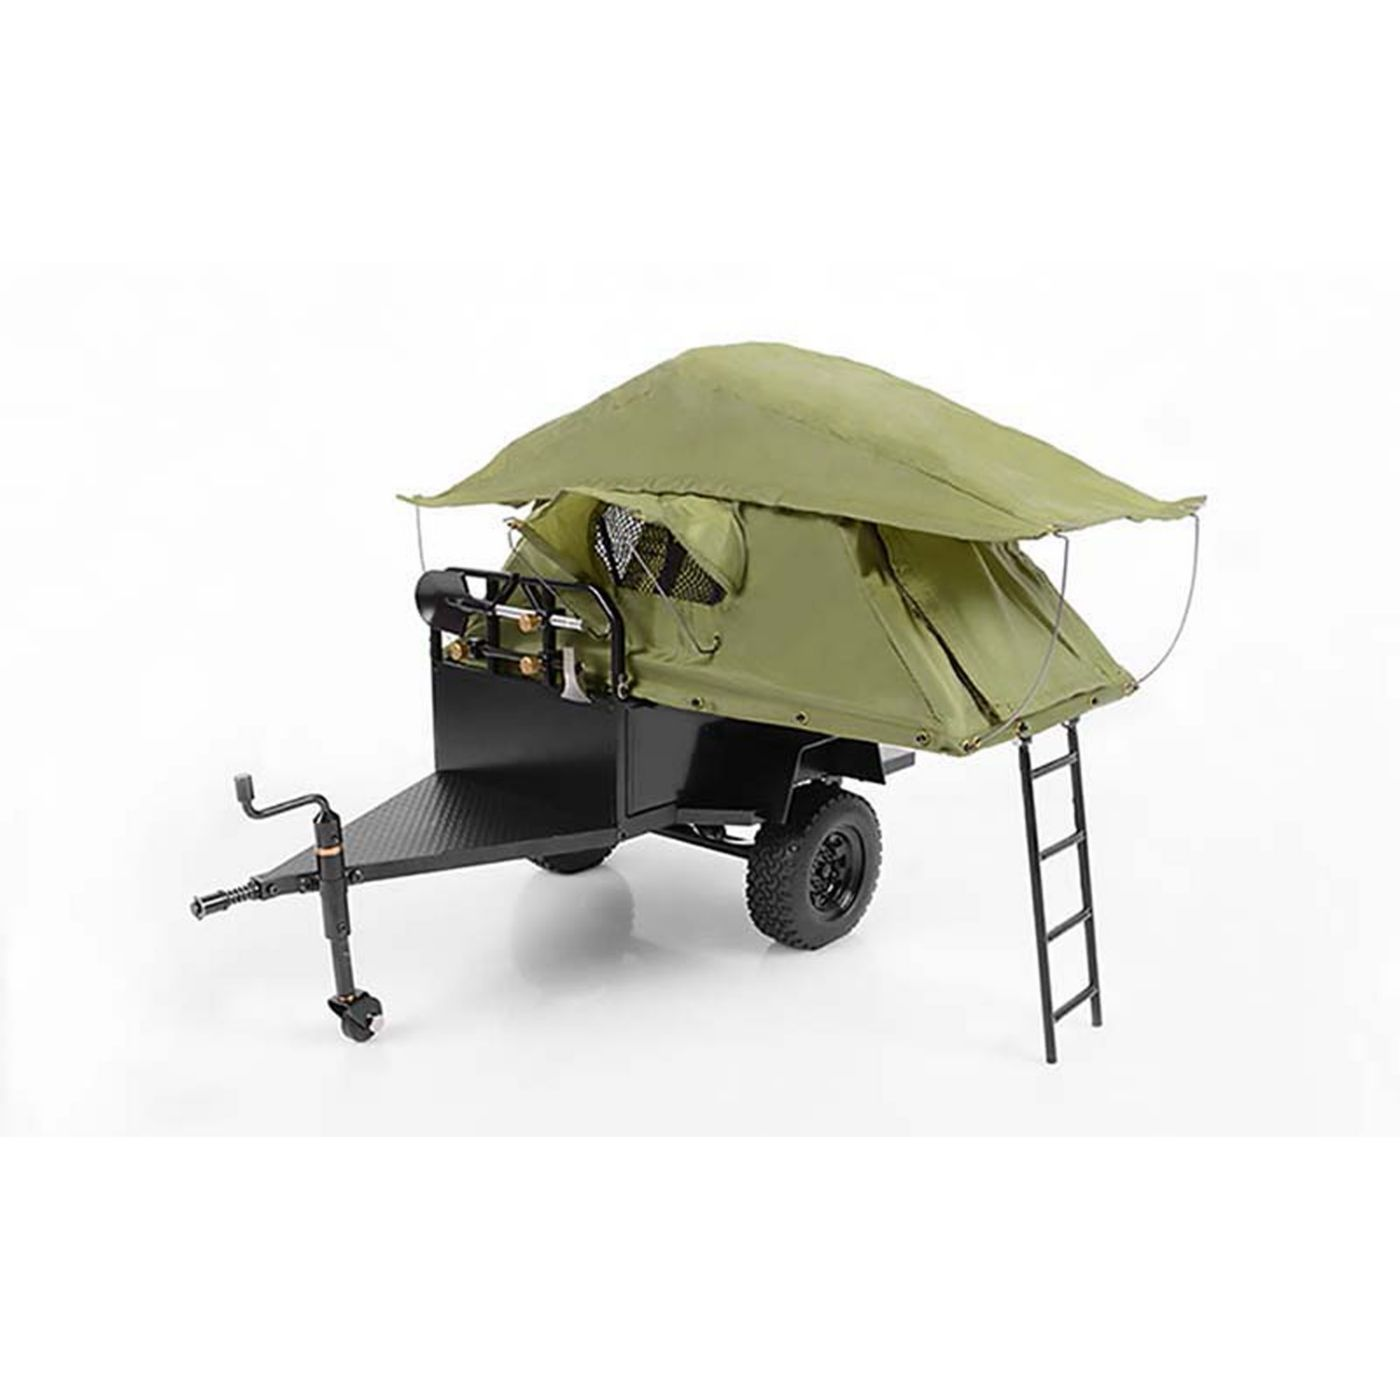 Image for Bivouac M.O.A.B C&ing Trailer with Tent from HorizonHobby  sc 1 st  Horizon Hobby & Bivouac M.O.A.B Camping Trailer with Tent   HorizonHobby